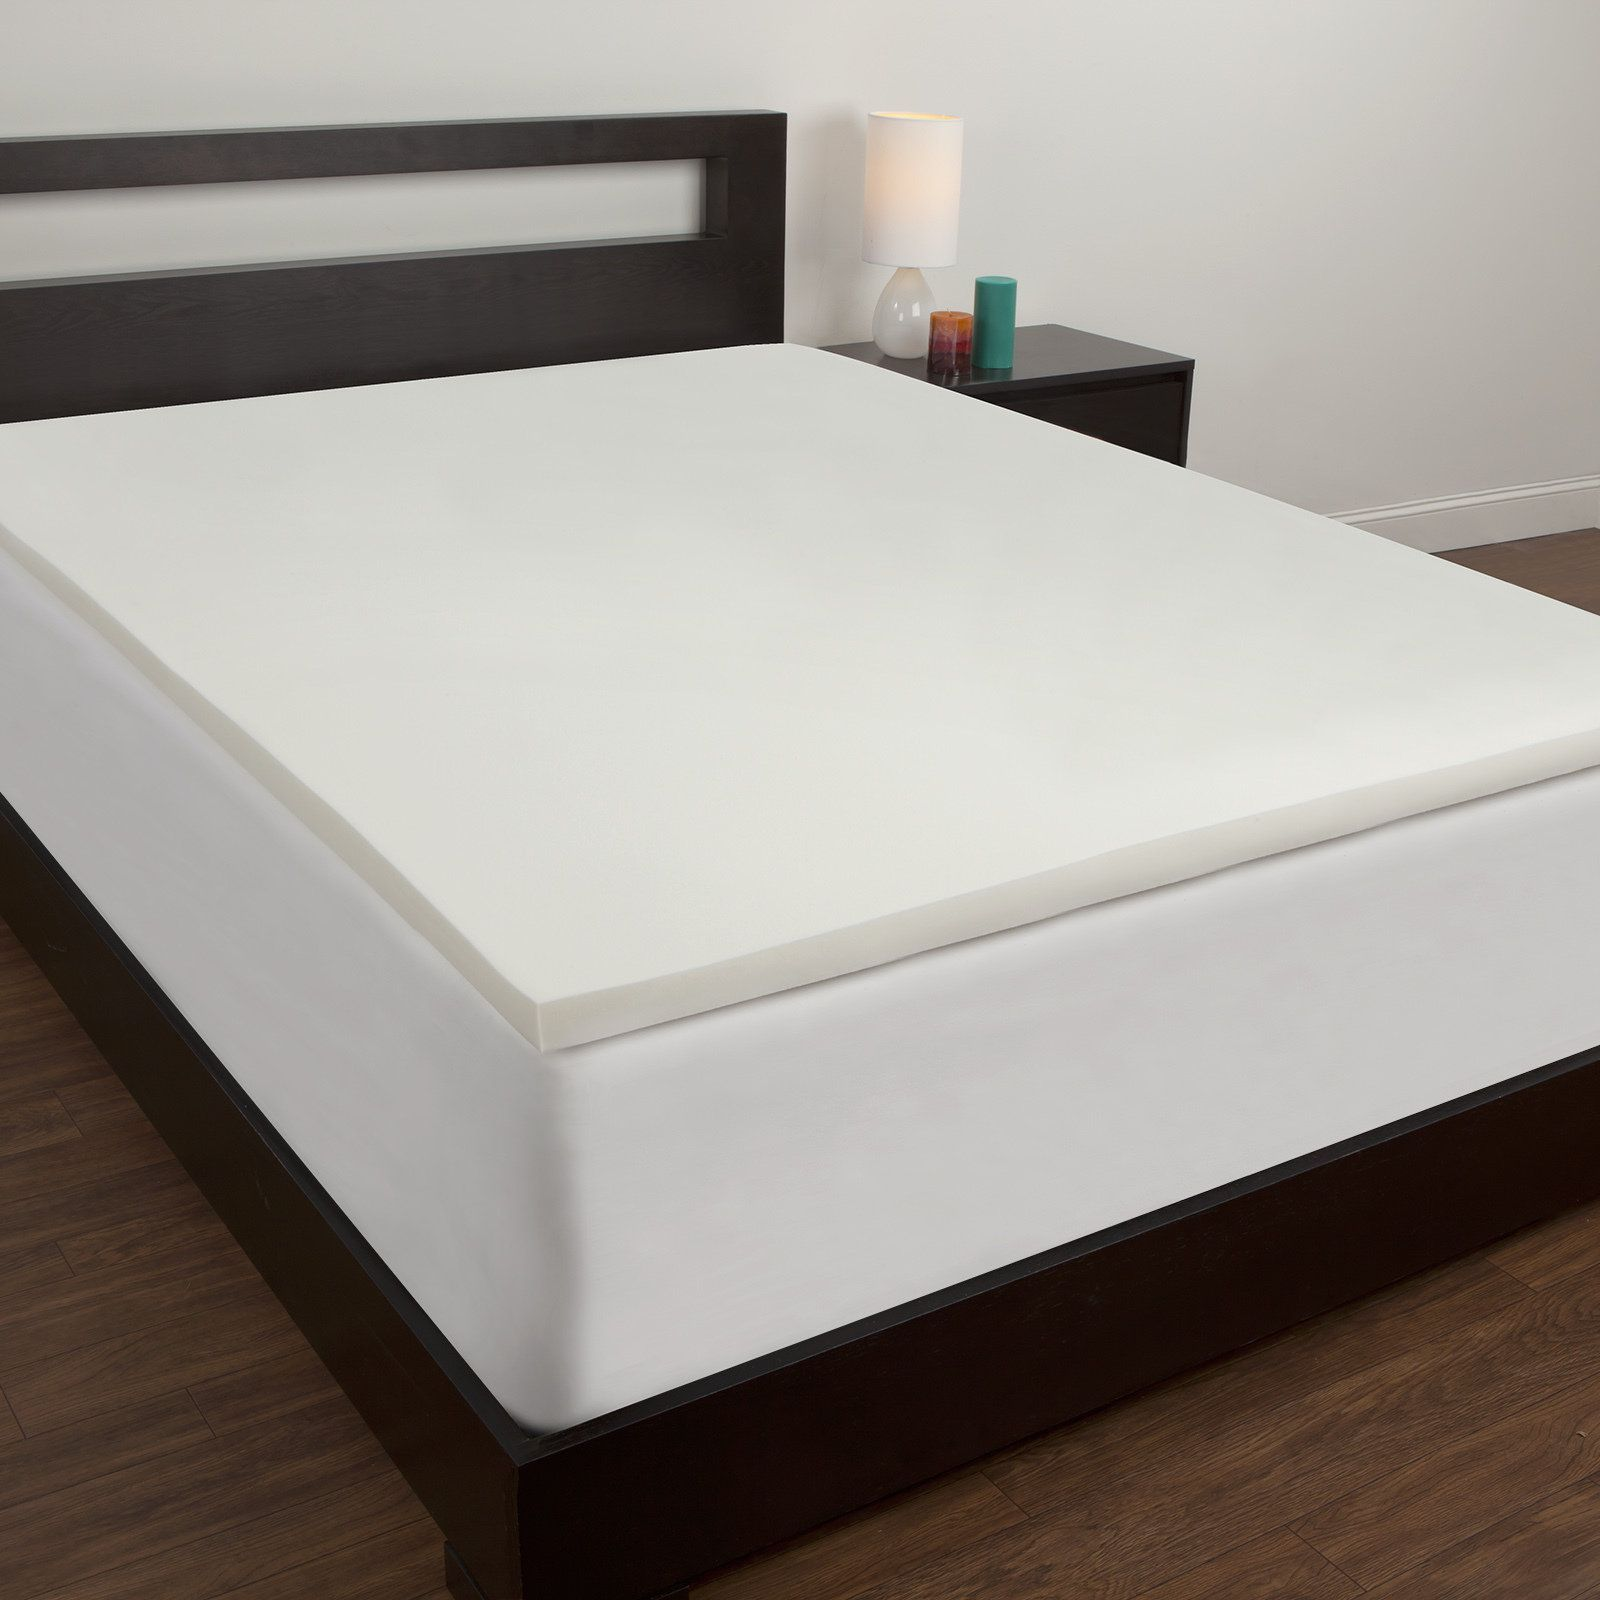 inch com tex memory gel fresh ip with toppers authentic comfort walmart cover mattress coolest nano topper foam